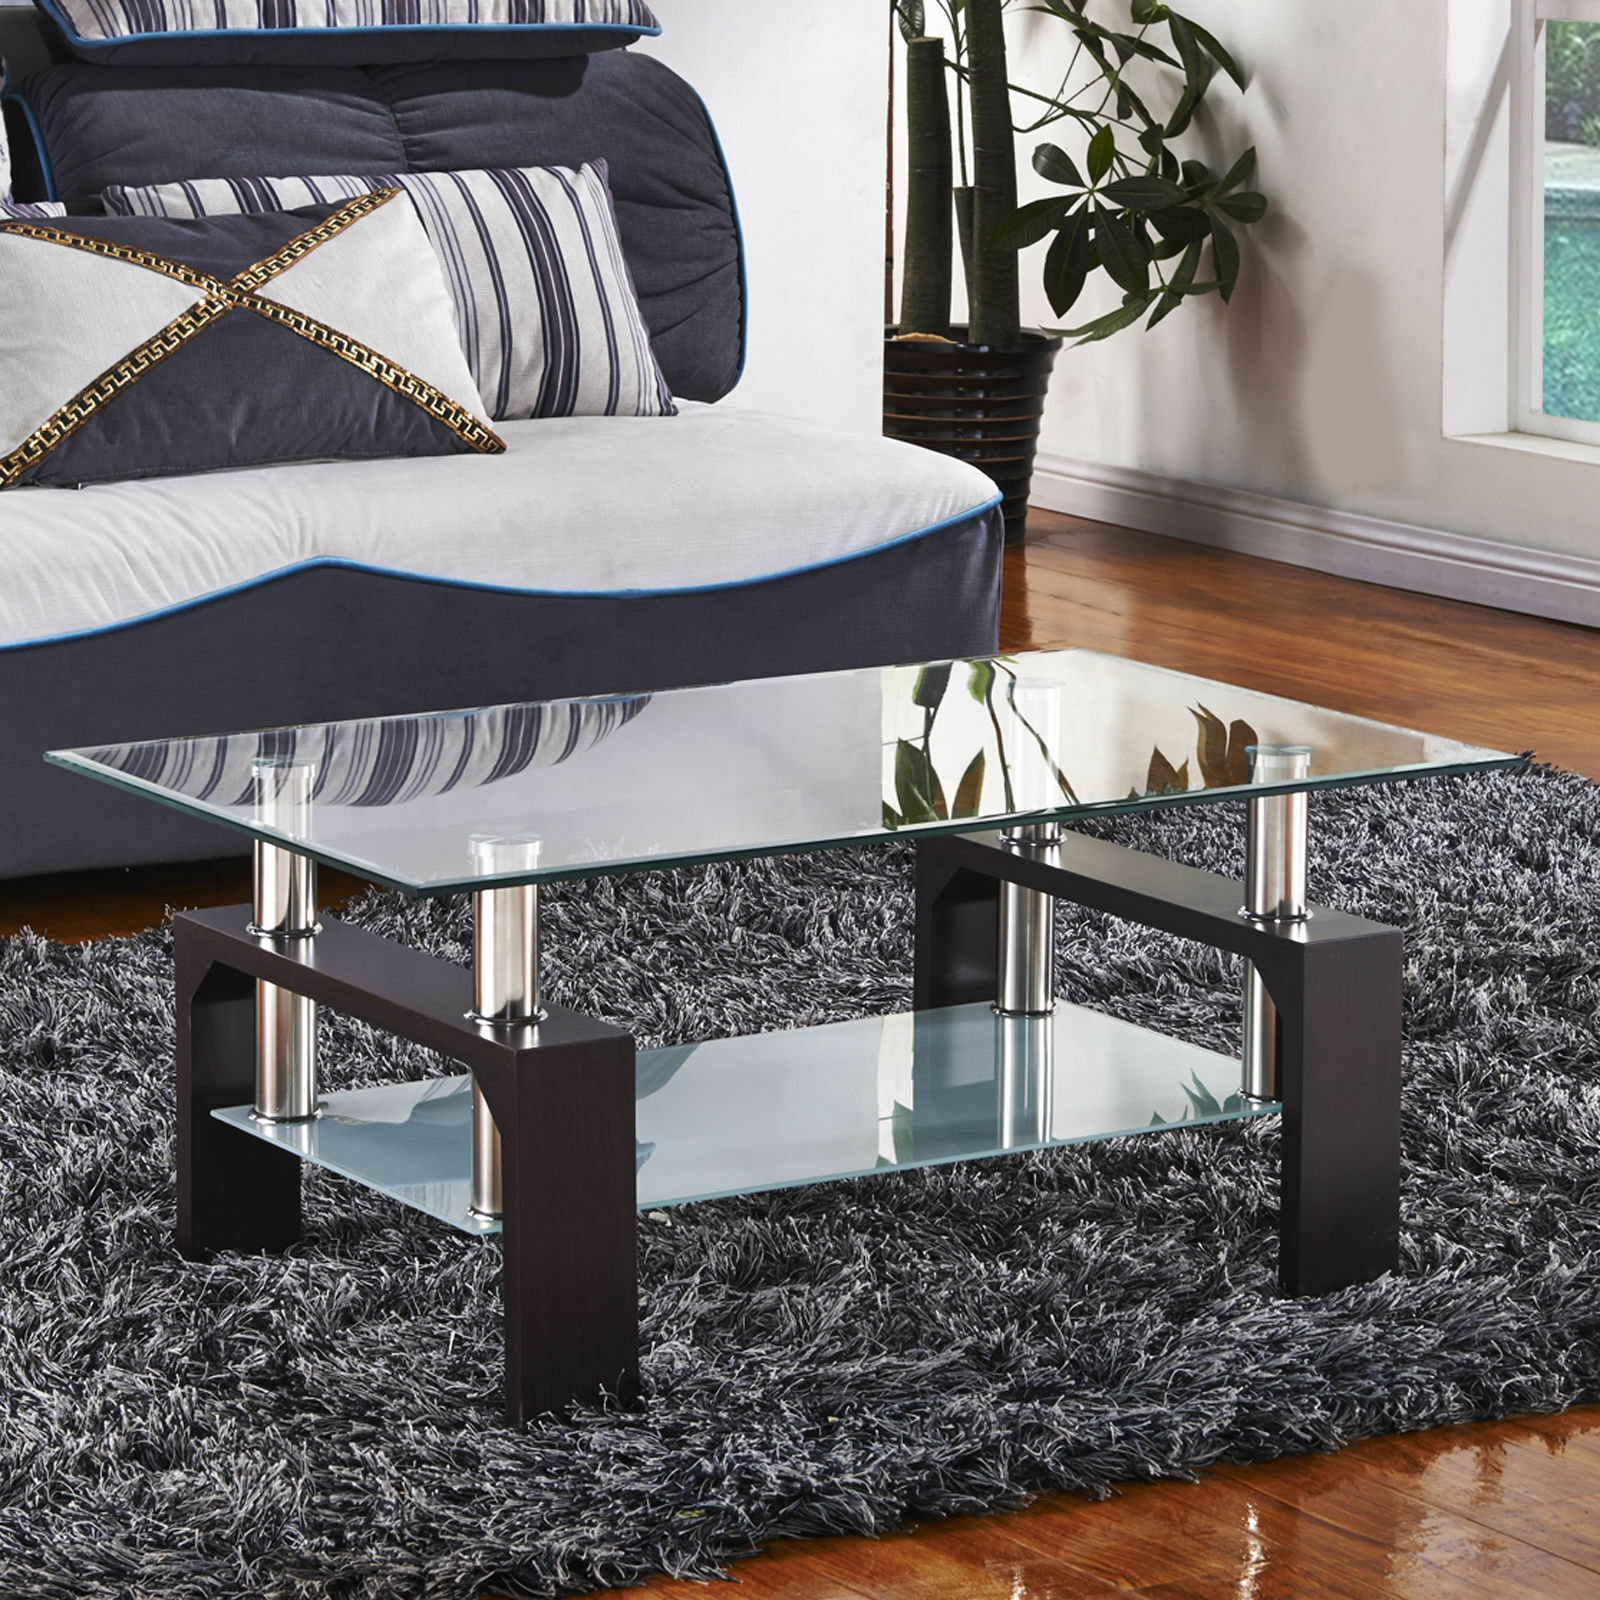 Walnut Oval Coffee Table Uk: Designer Glass Coffee Table Rectangular Walnut Legs Chrome